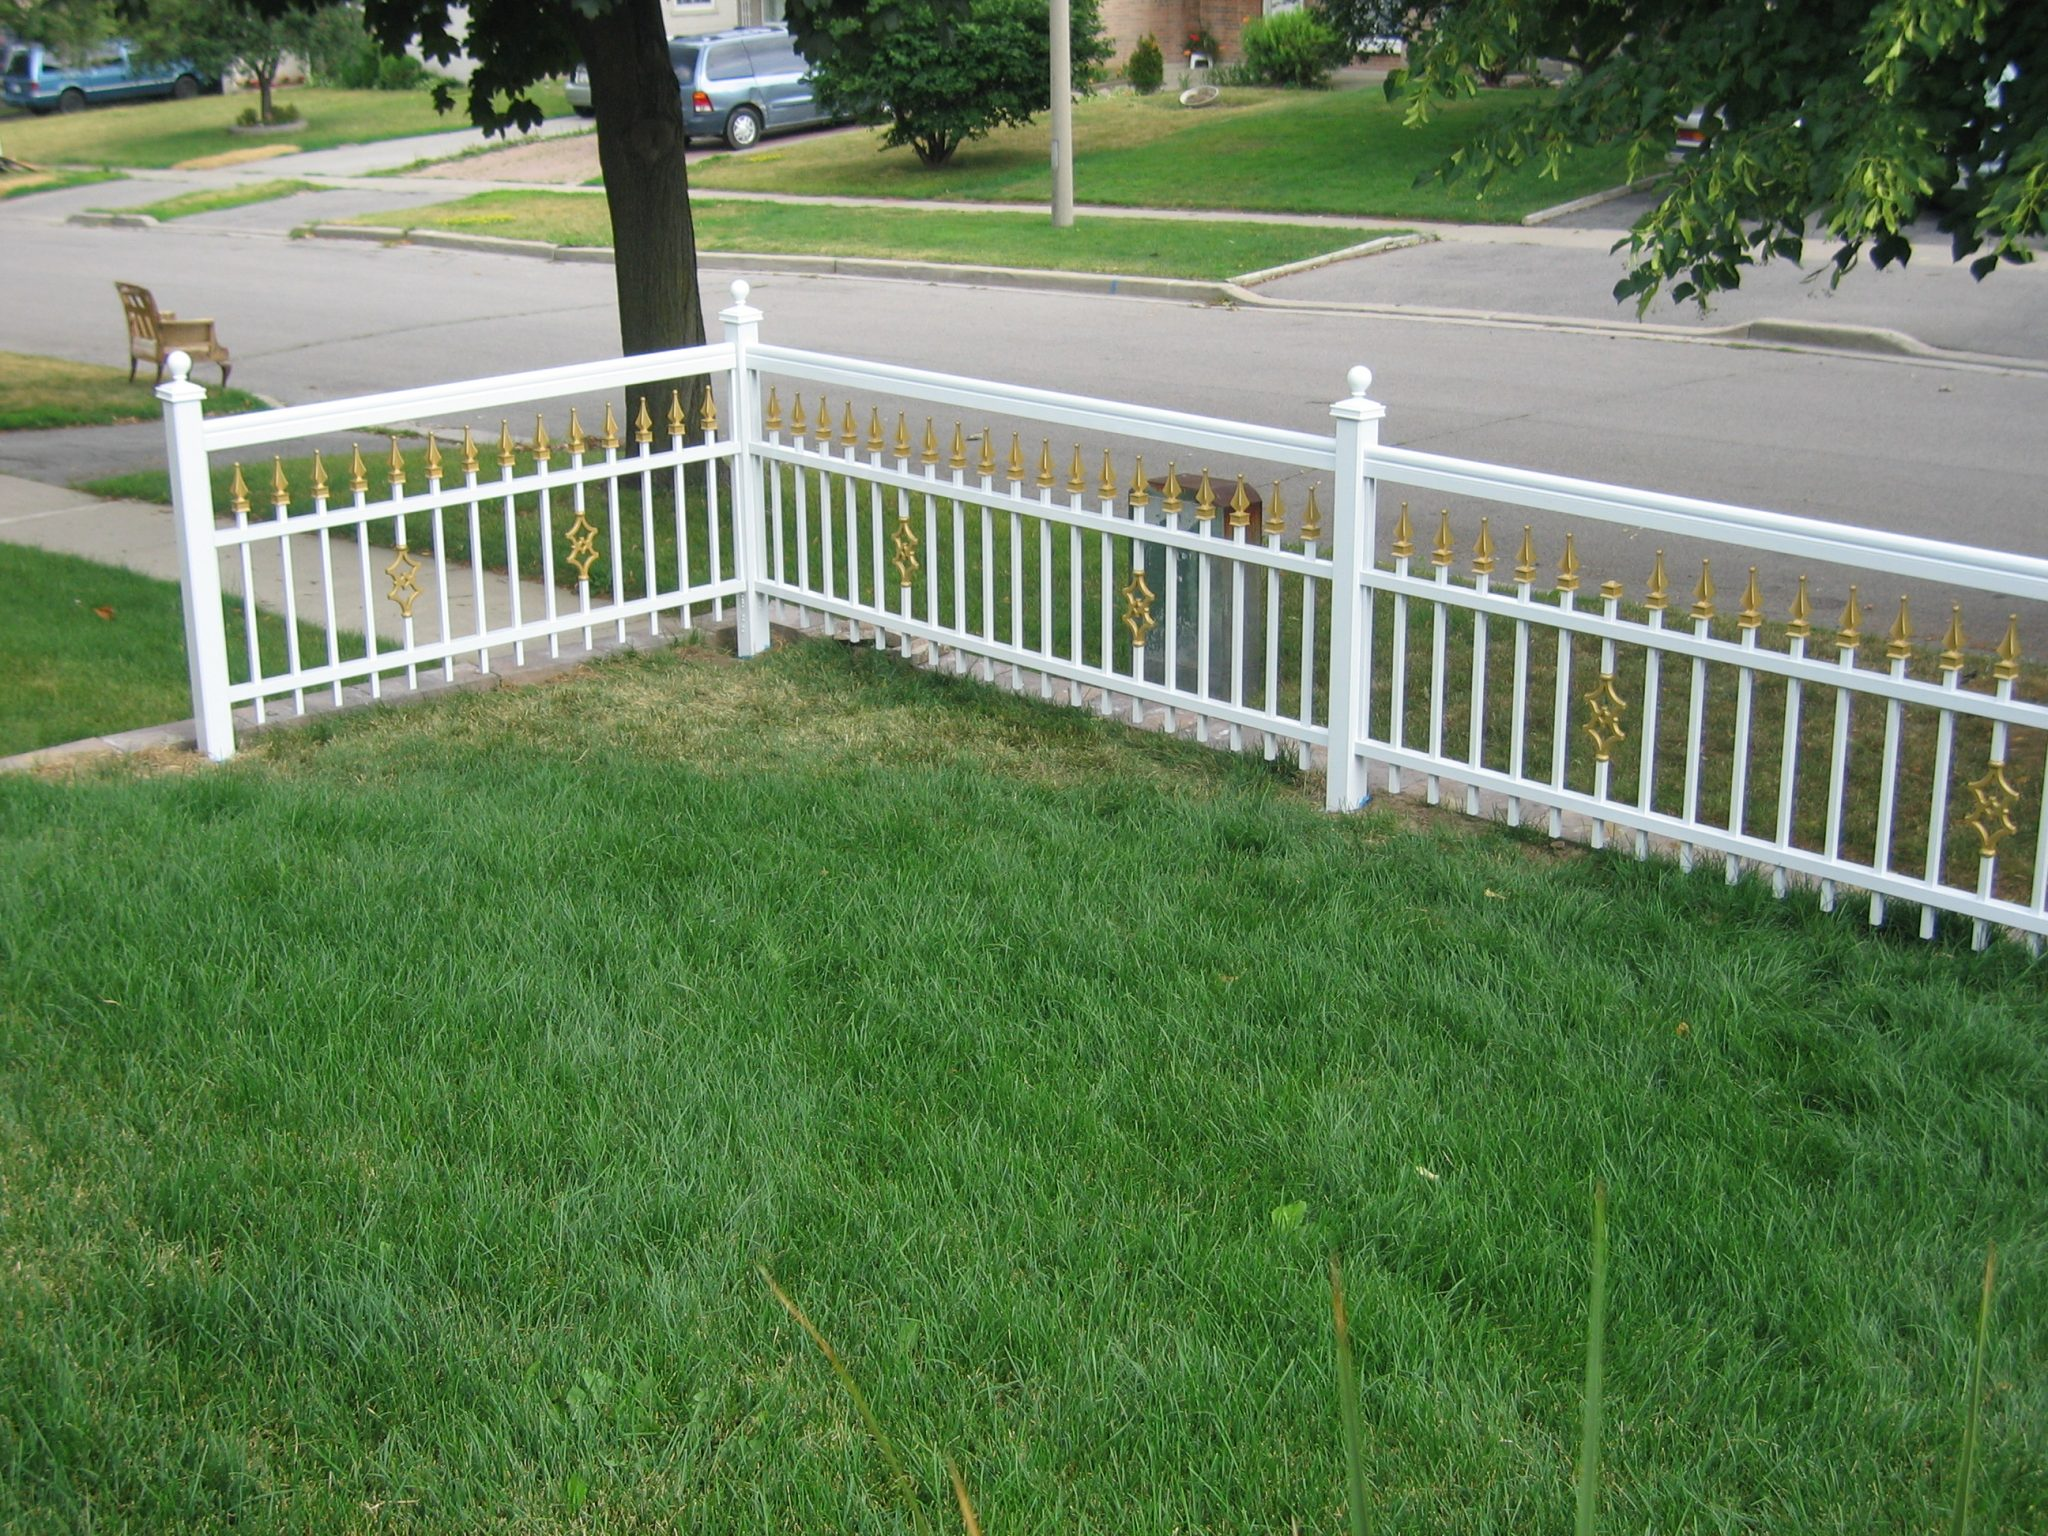 Frame fence with gold trim